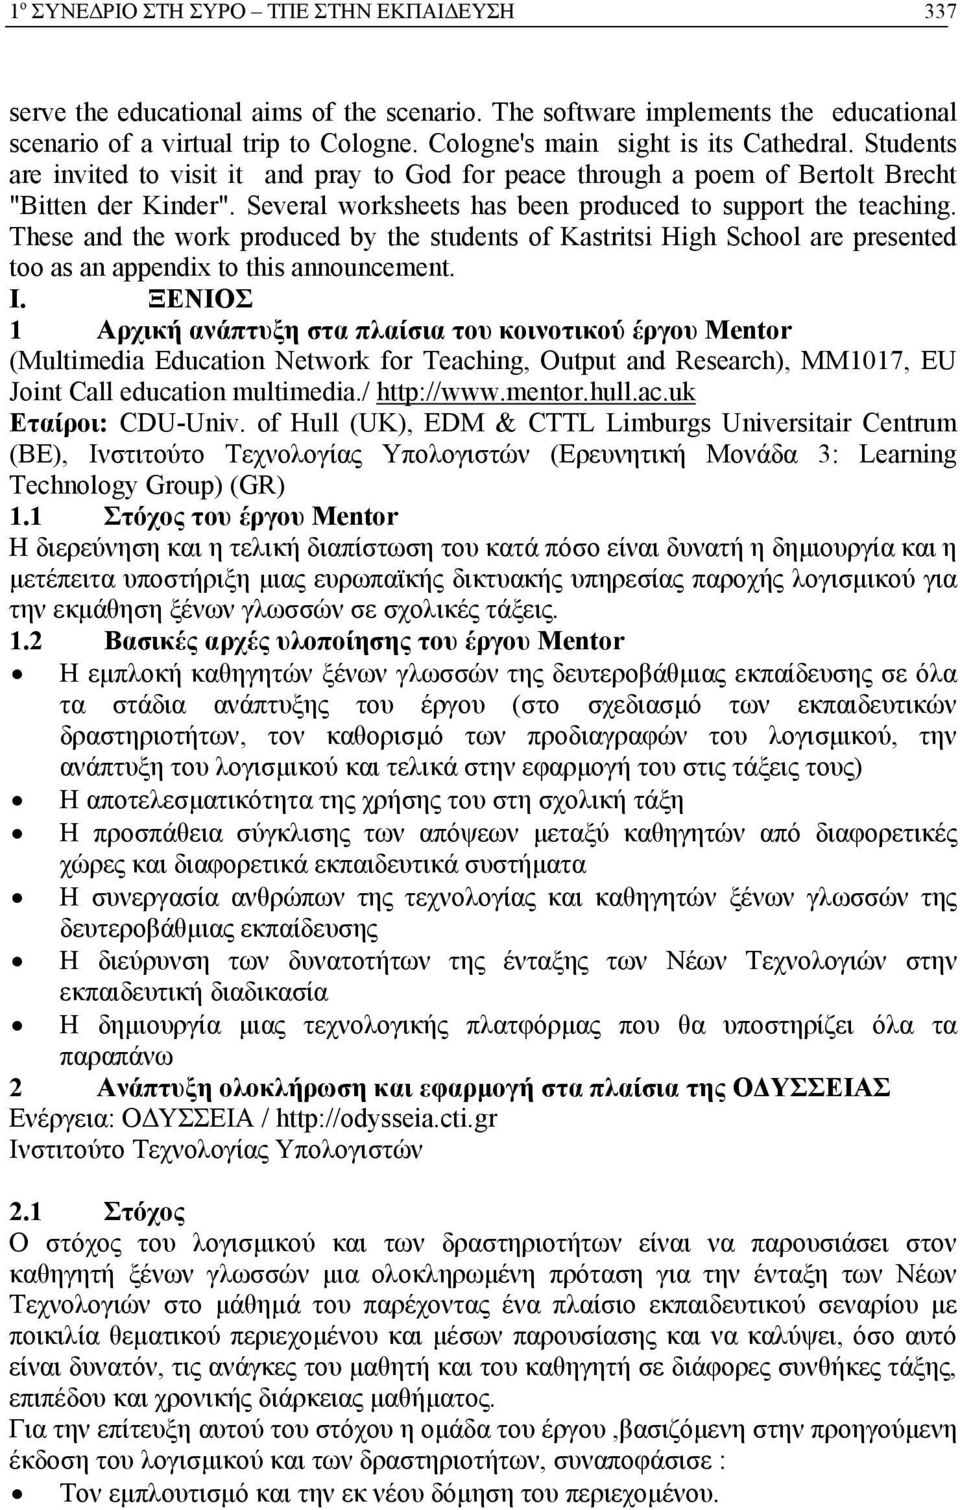 Several worksheets has been produced to support the teaching. These and the work produced by the students of Kastritsi High School are presented too as an appendix to this announcement. I.